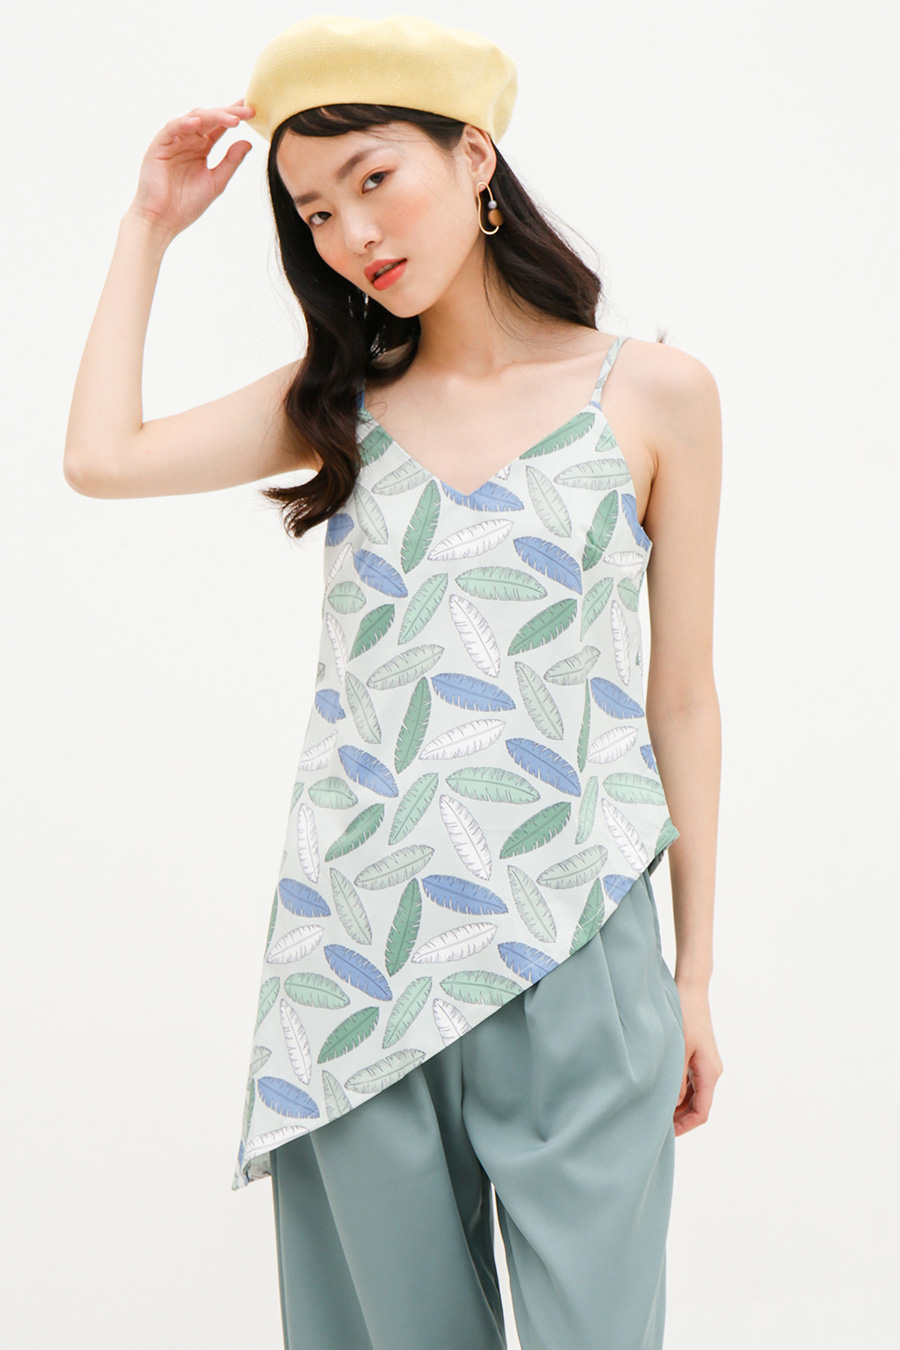 *SALE* SACHIKO TOP - BOTANY [BY MODPARADE]